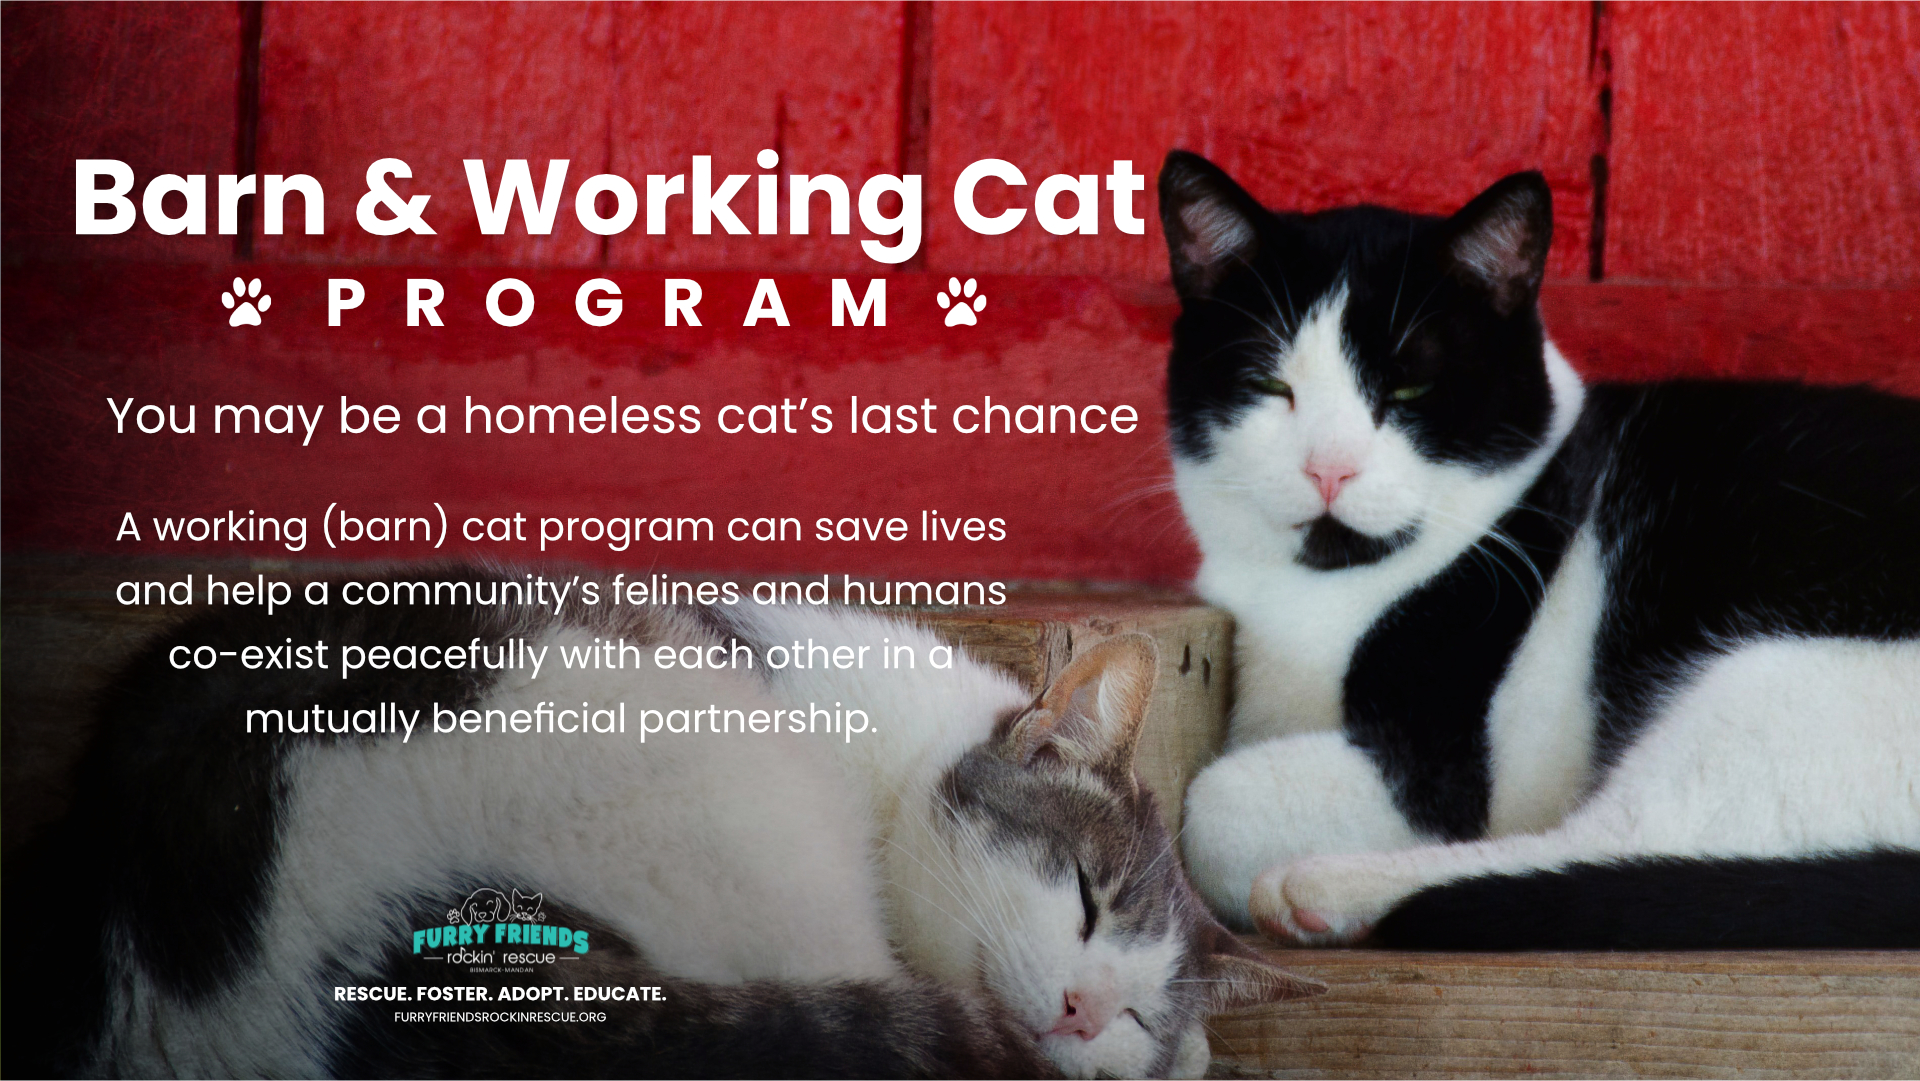 You may be a homeless cat's last chance……. A working (barn) cat program can save lives and help a community's felines and humans co-exist peacefully with each other in a mutually beneficial partnership.